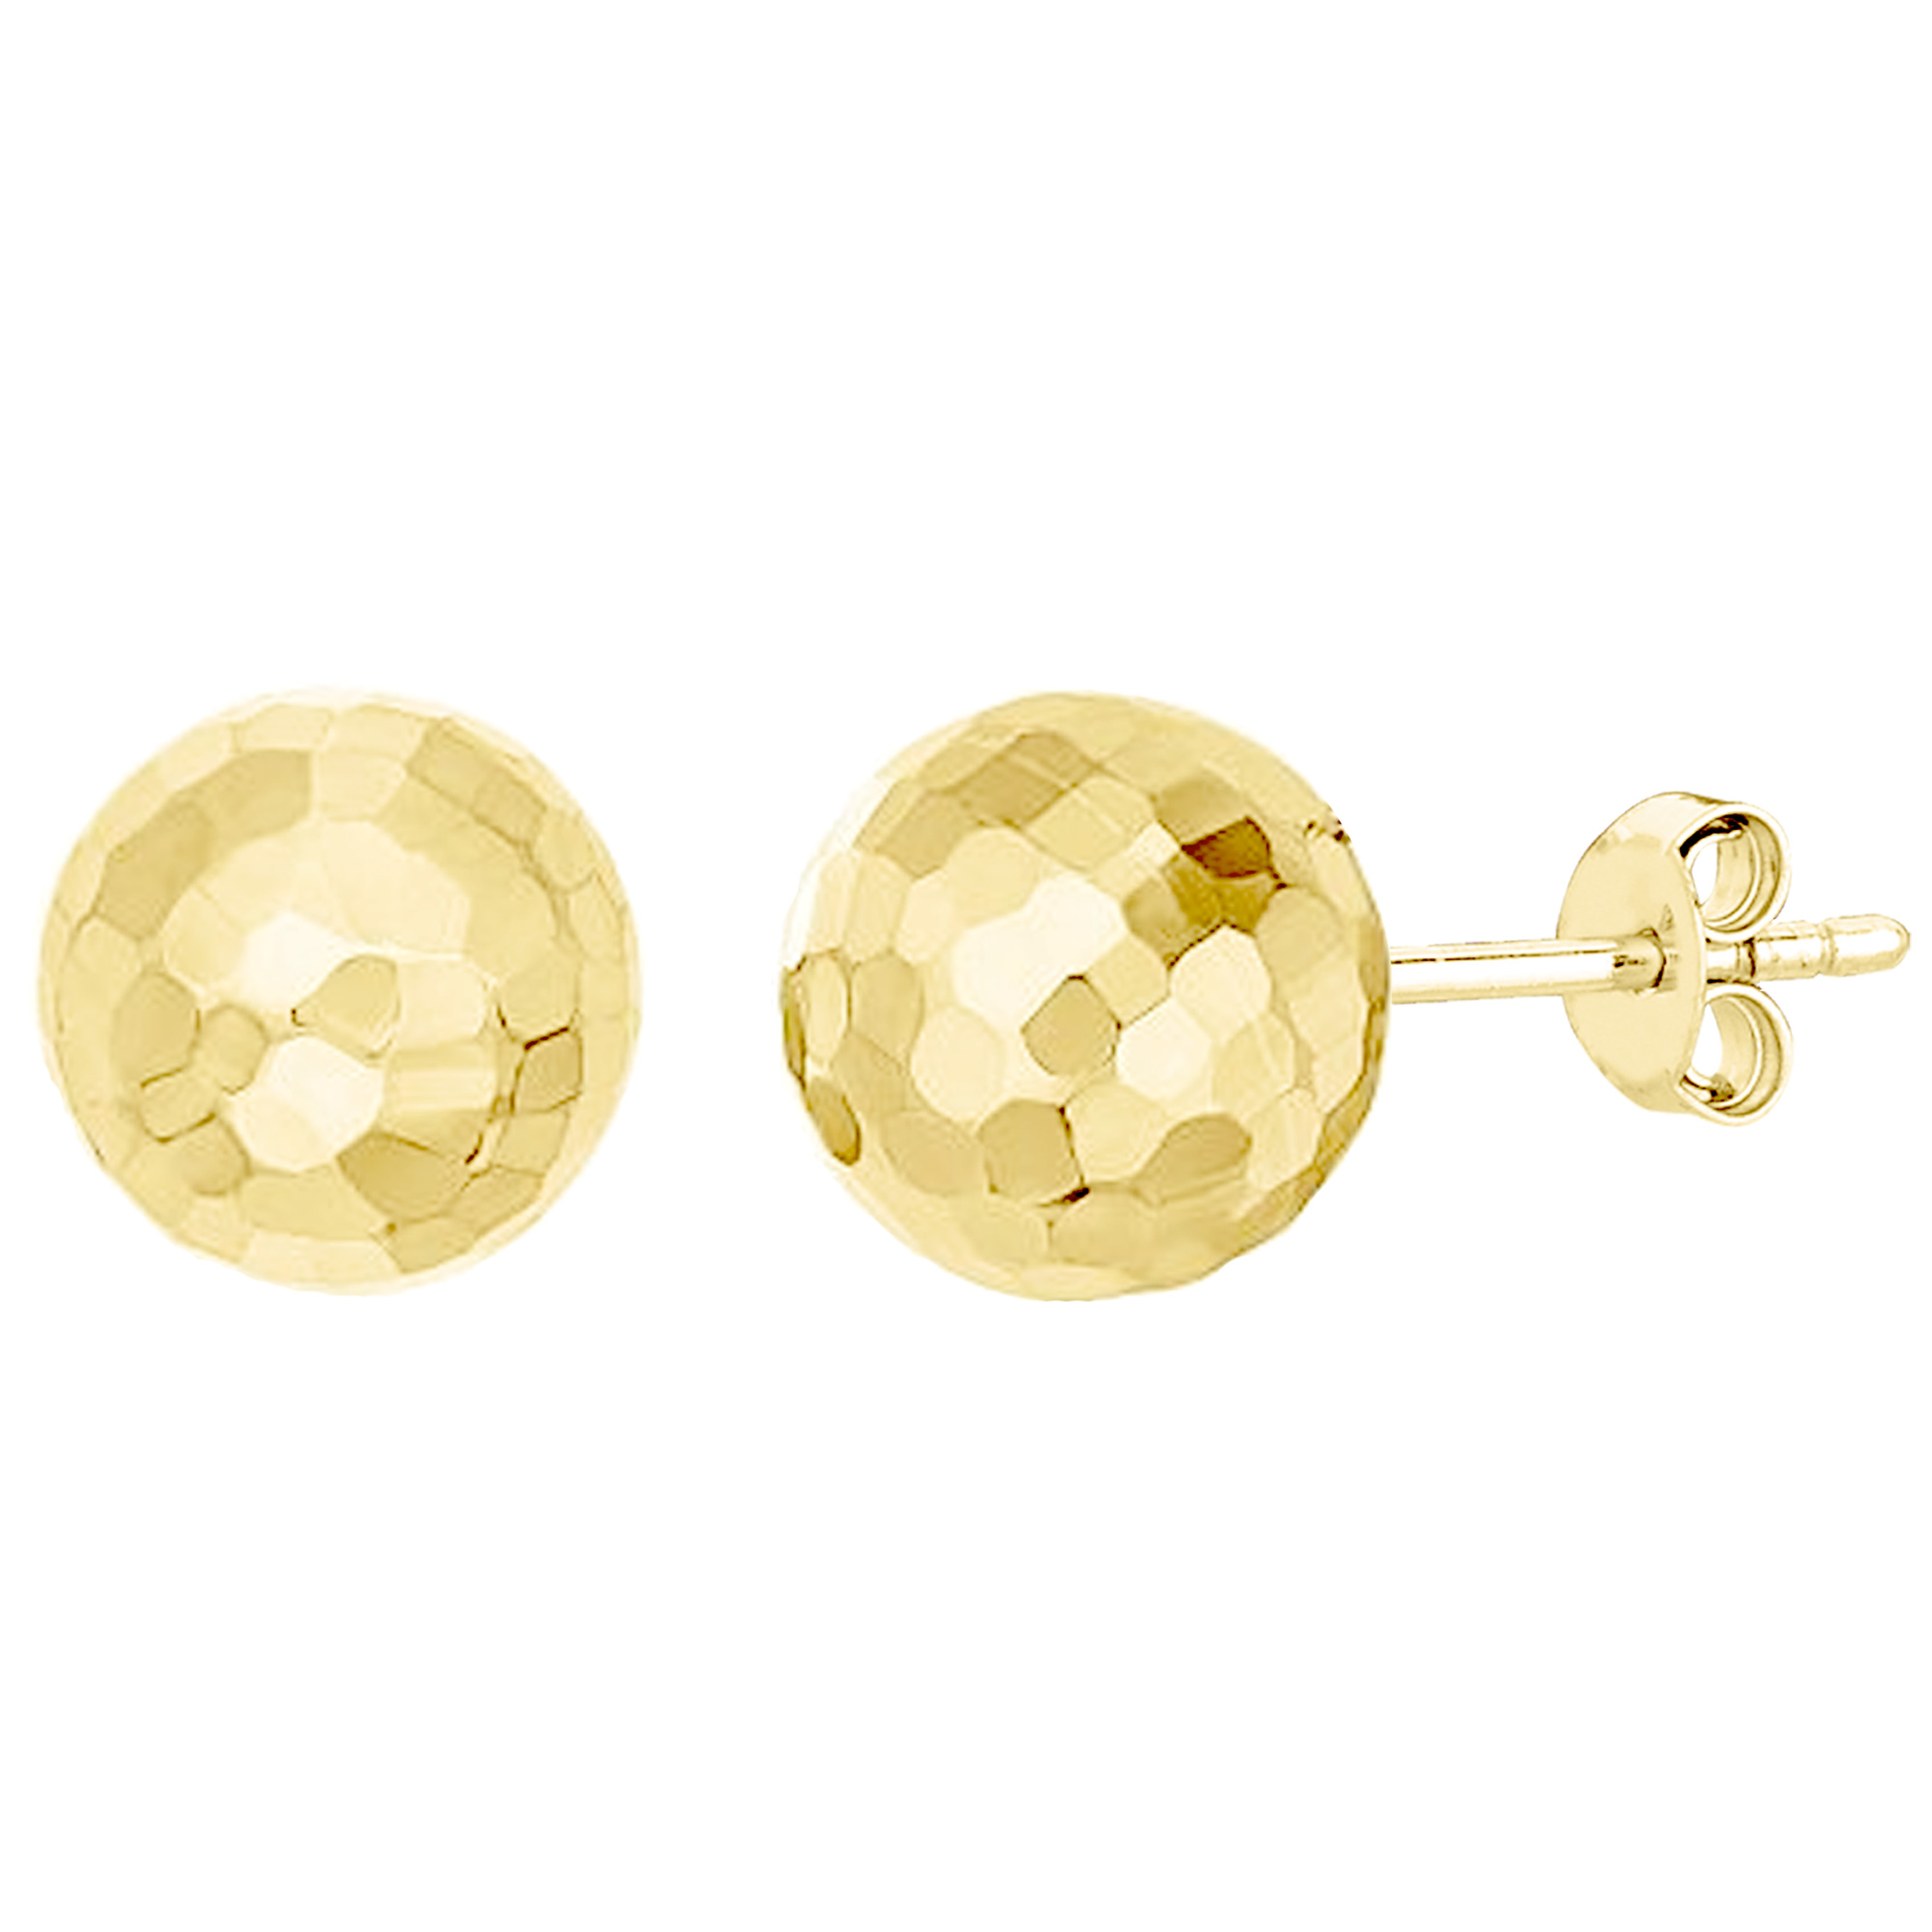 7 to 17mm 13x13 mm Hammered Half Ball Post Earrings in Genuine 14k Yellow Gold